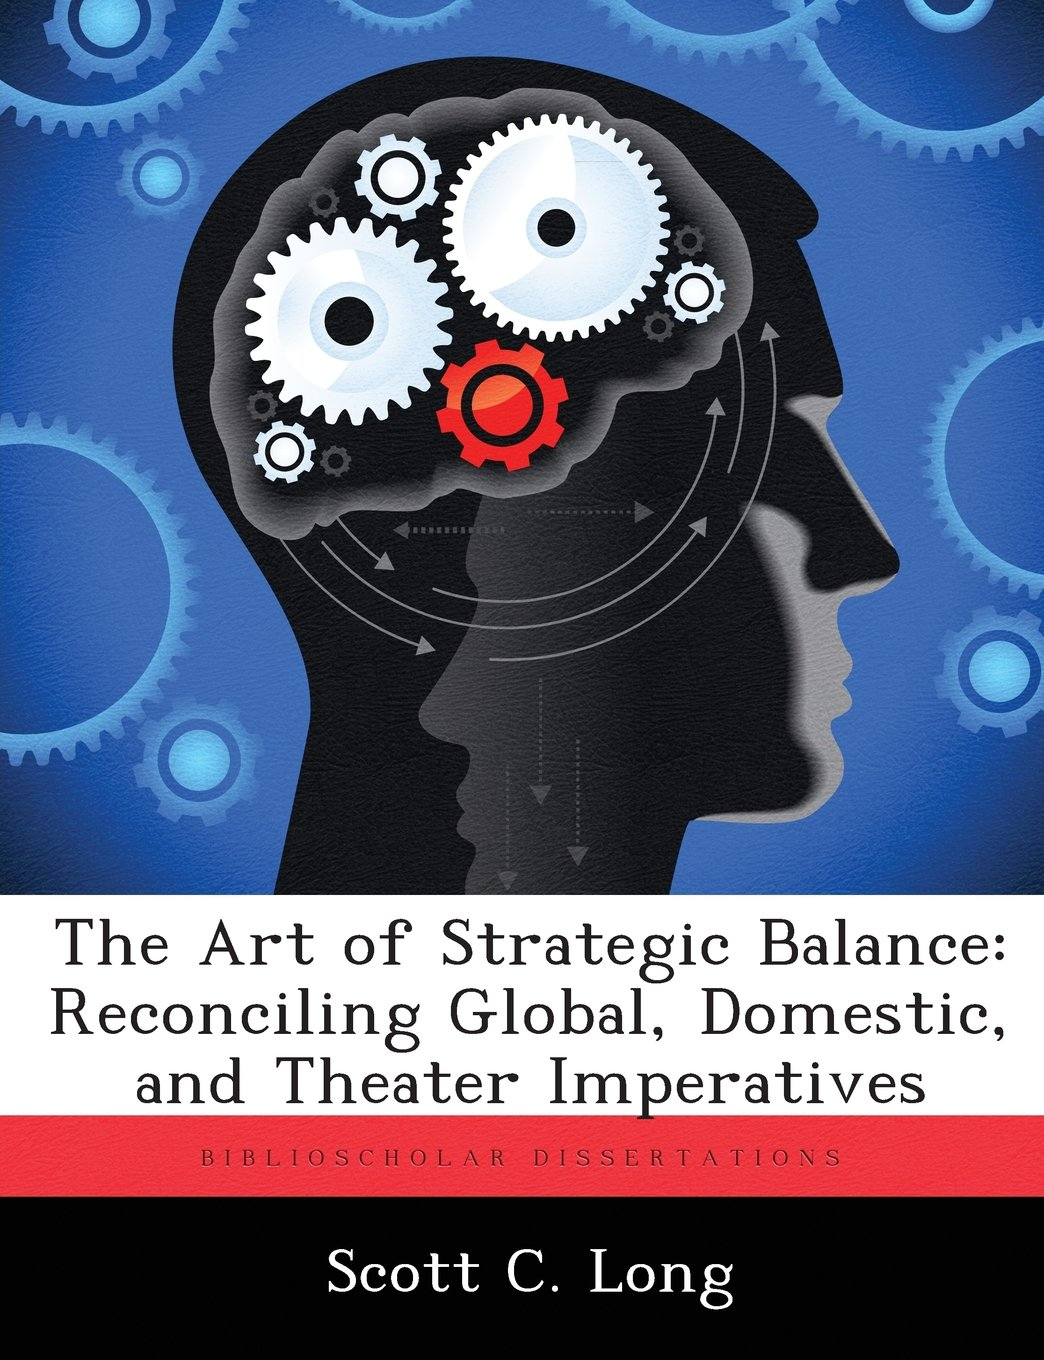 The Art of Strategic Balance: Reconciling Global, Domestic, and Theater Imperatives ebook